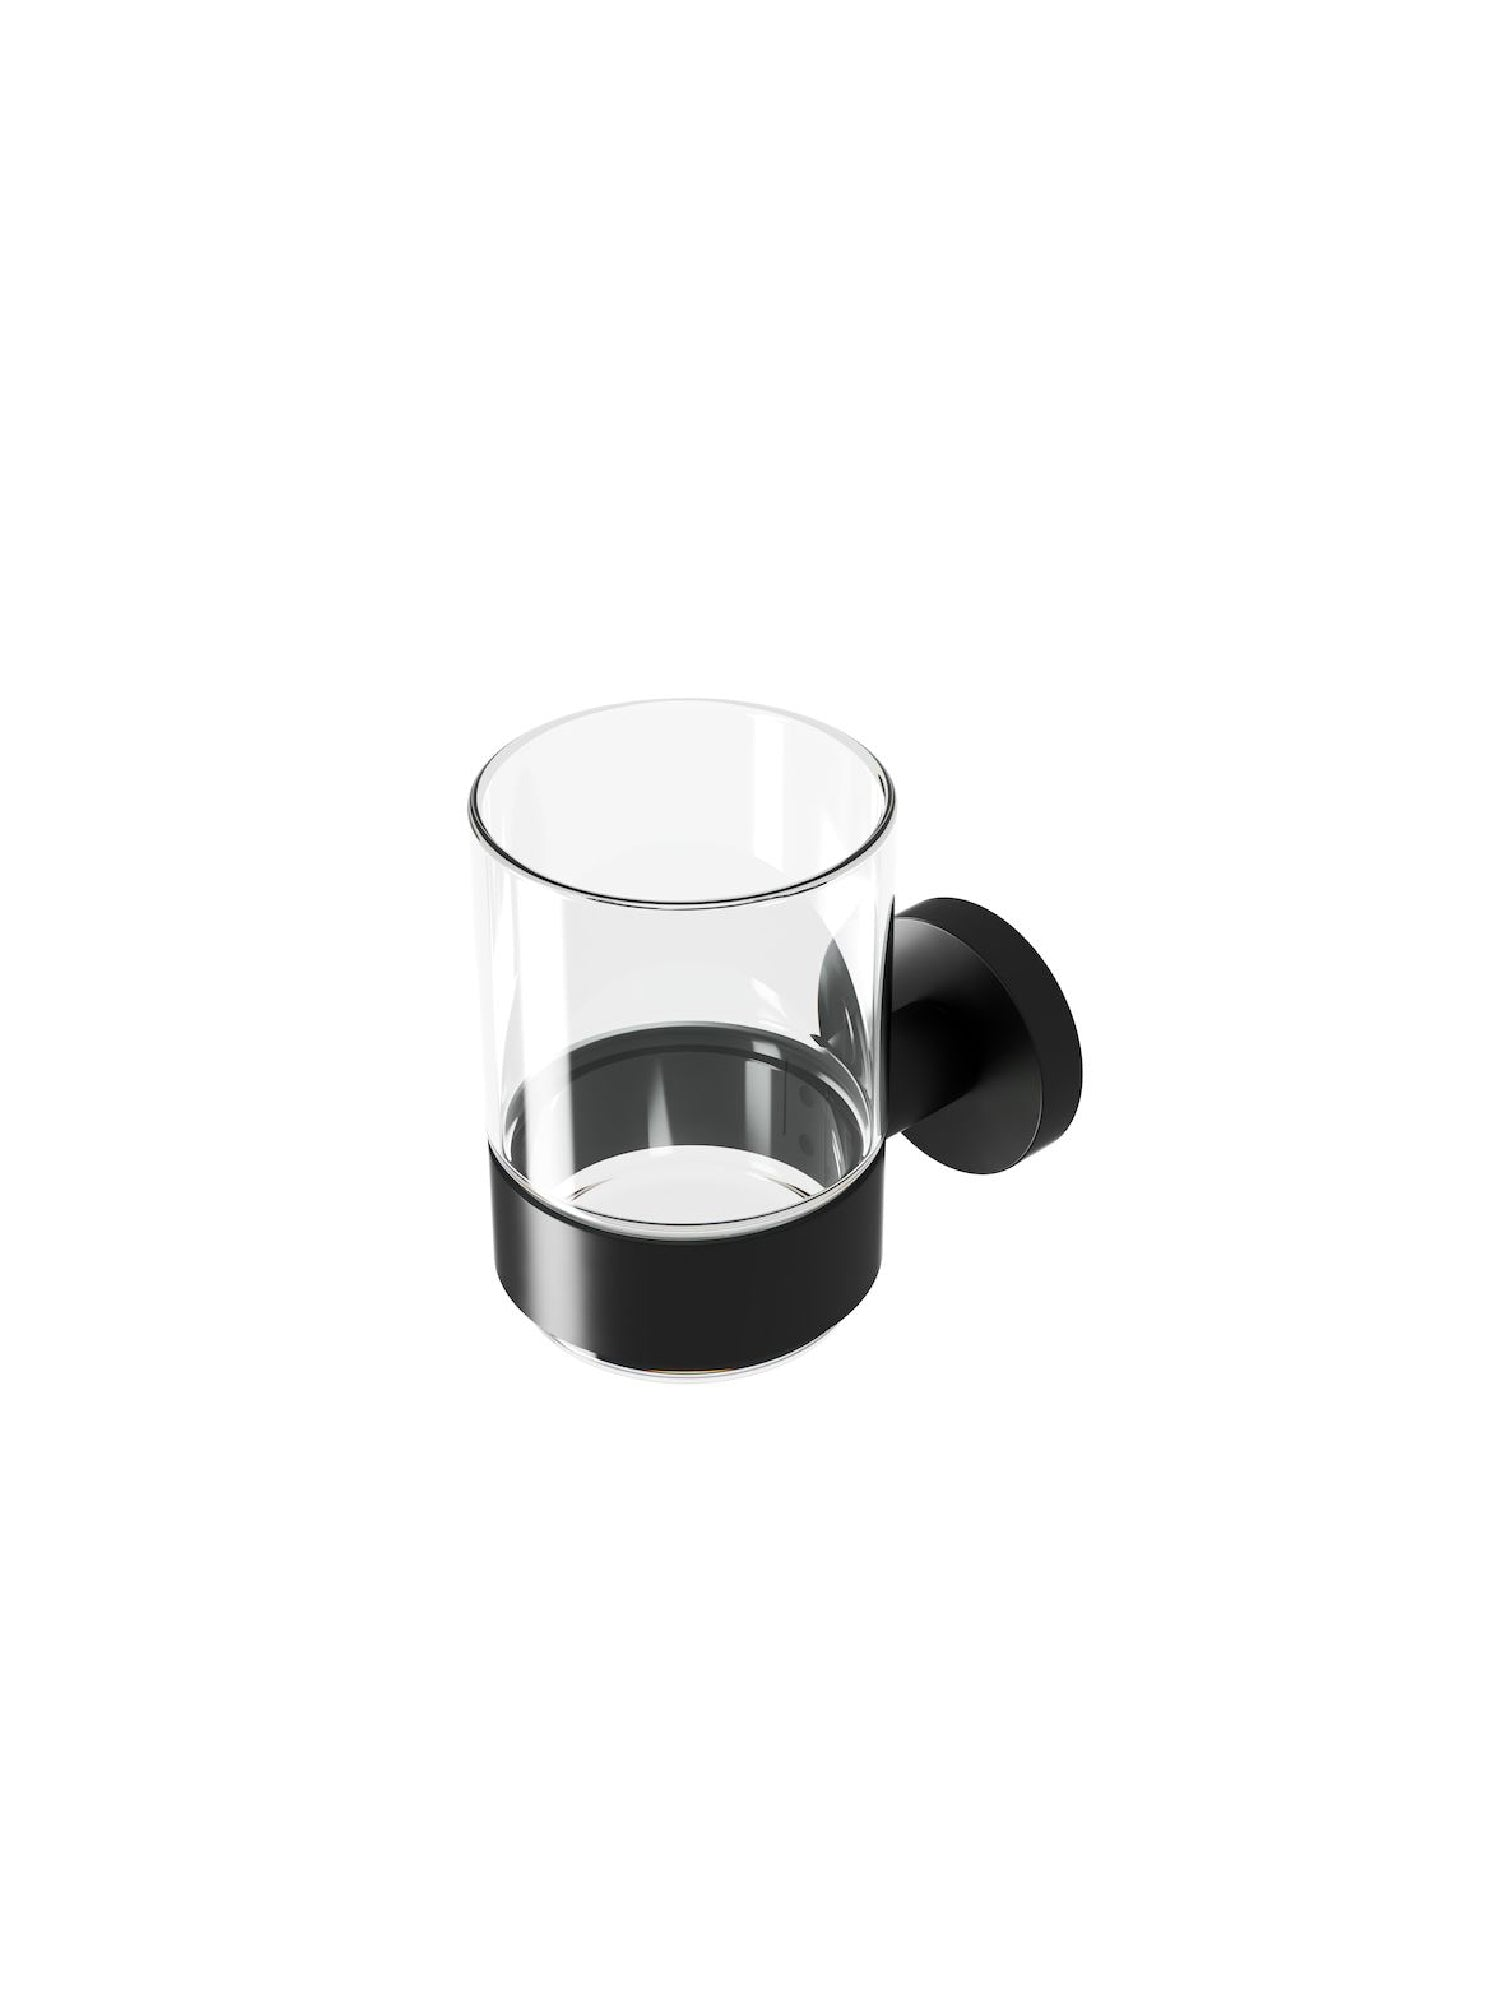 Nemox Black Tumbler Holder #6502-06